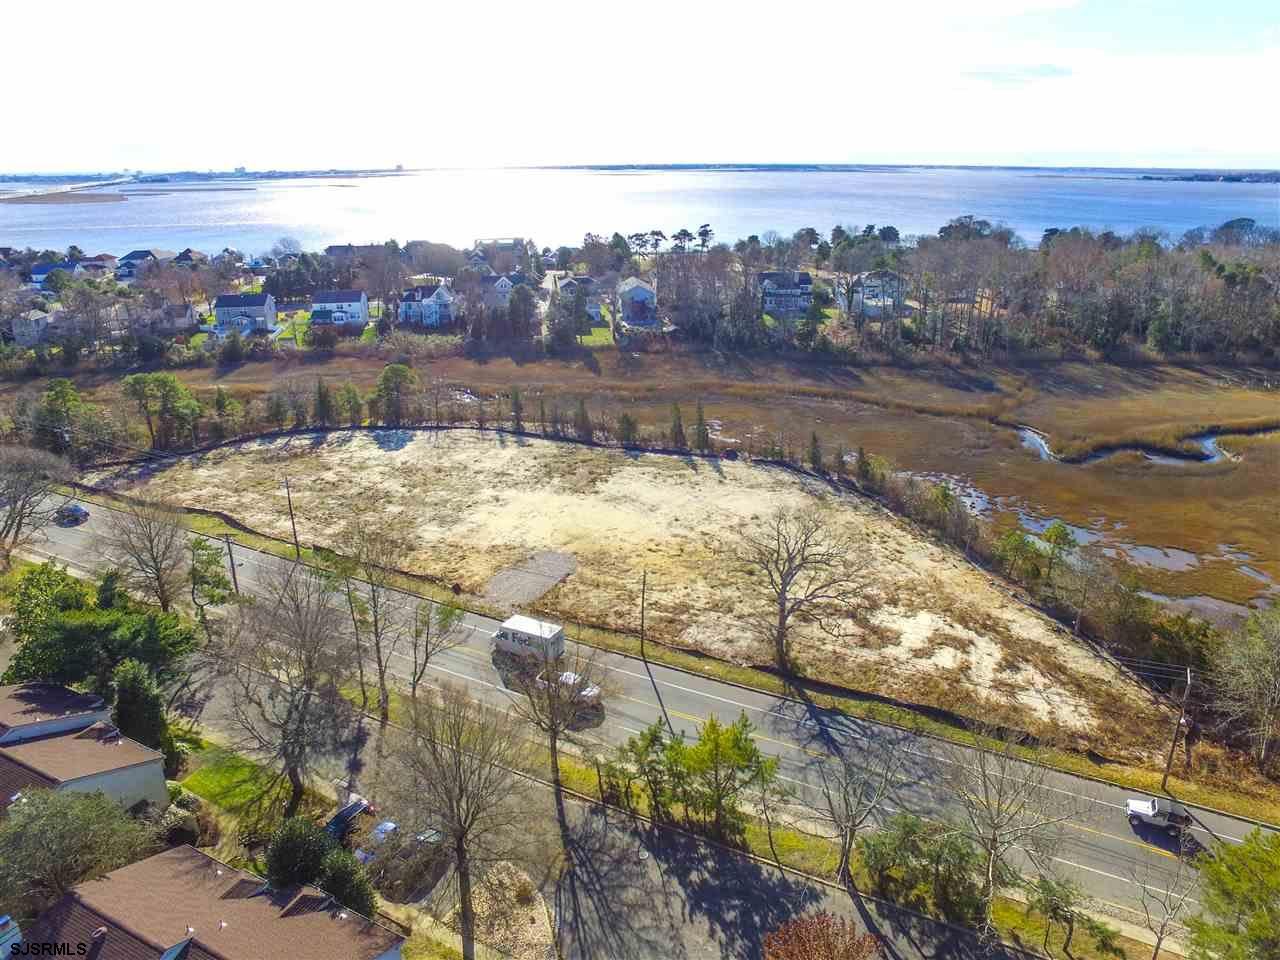 500 Mays Landing Road, Somers Point NJ 08244 - Photo 1